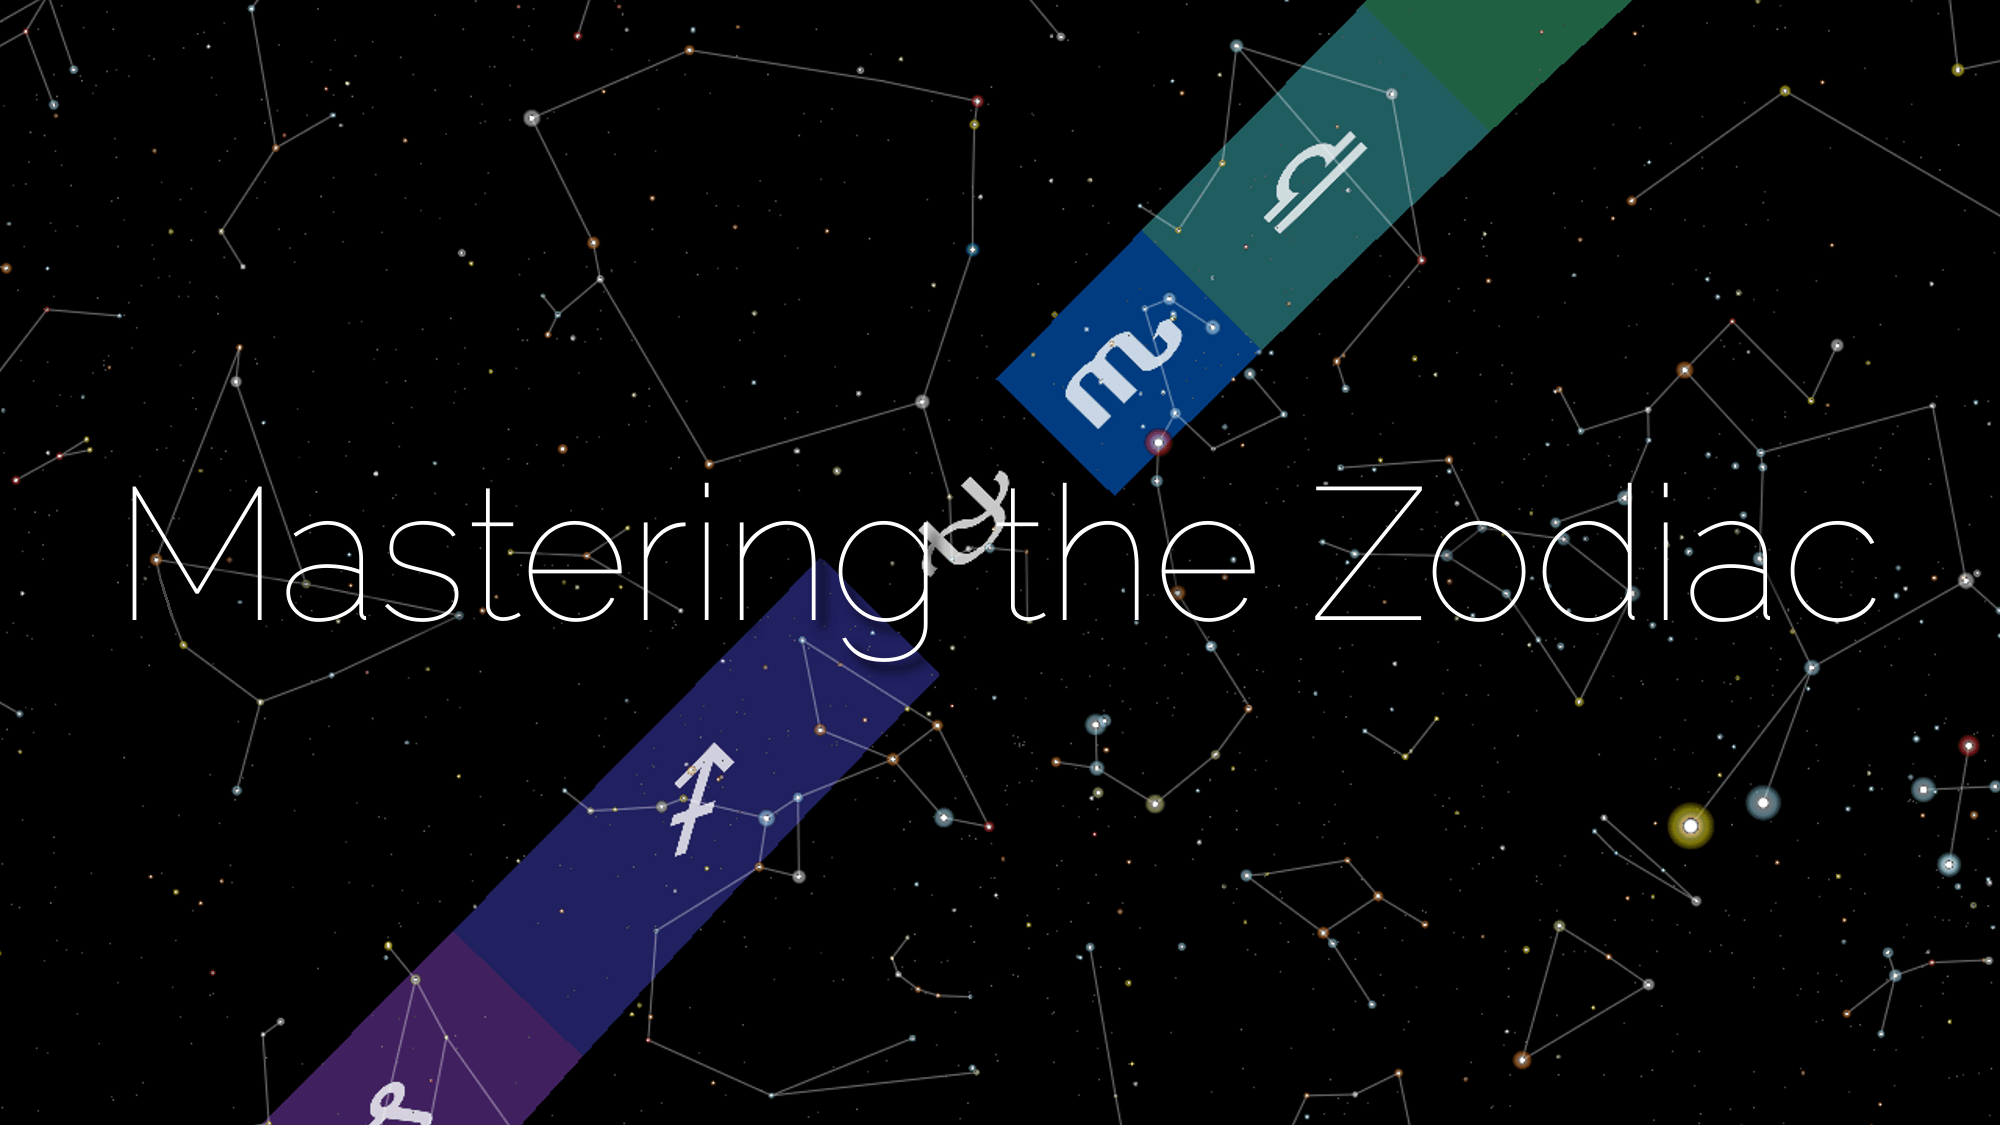 Sidereal Astrology Dates Mastering The Zodiac